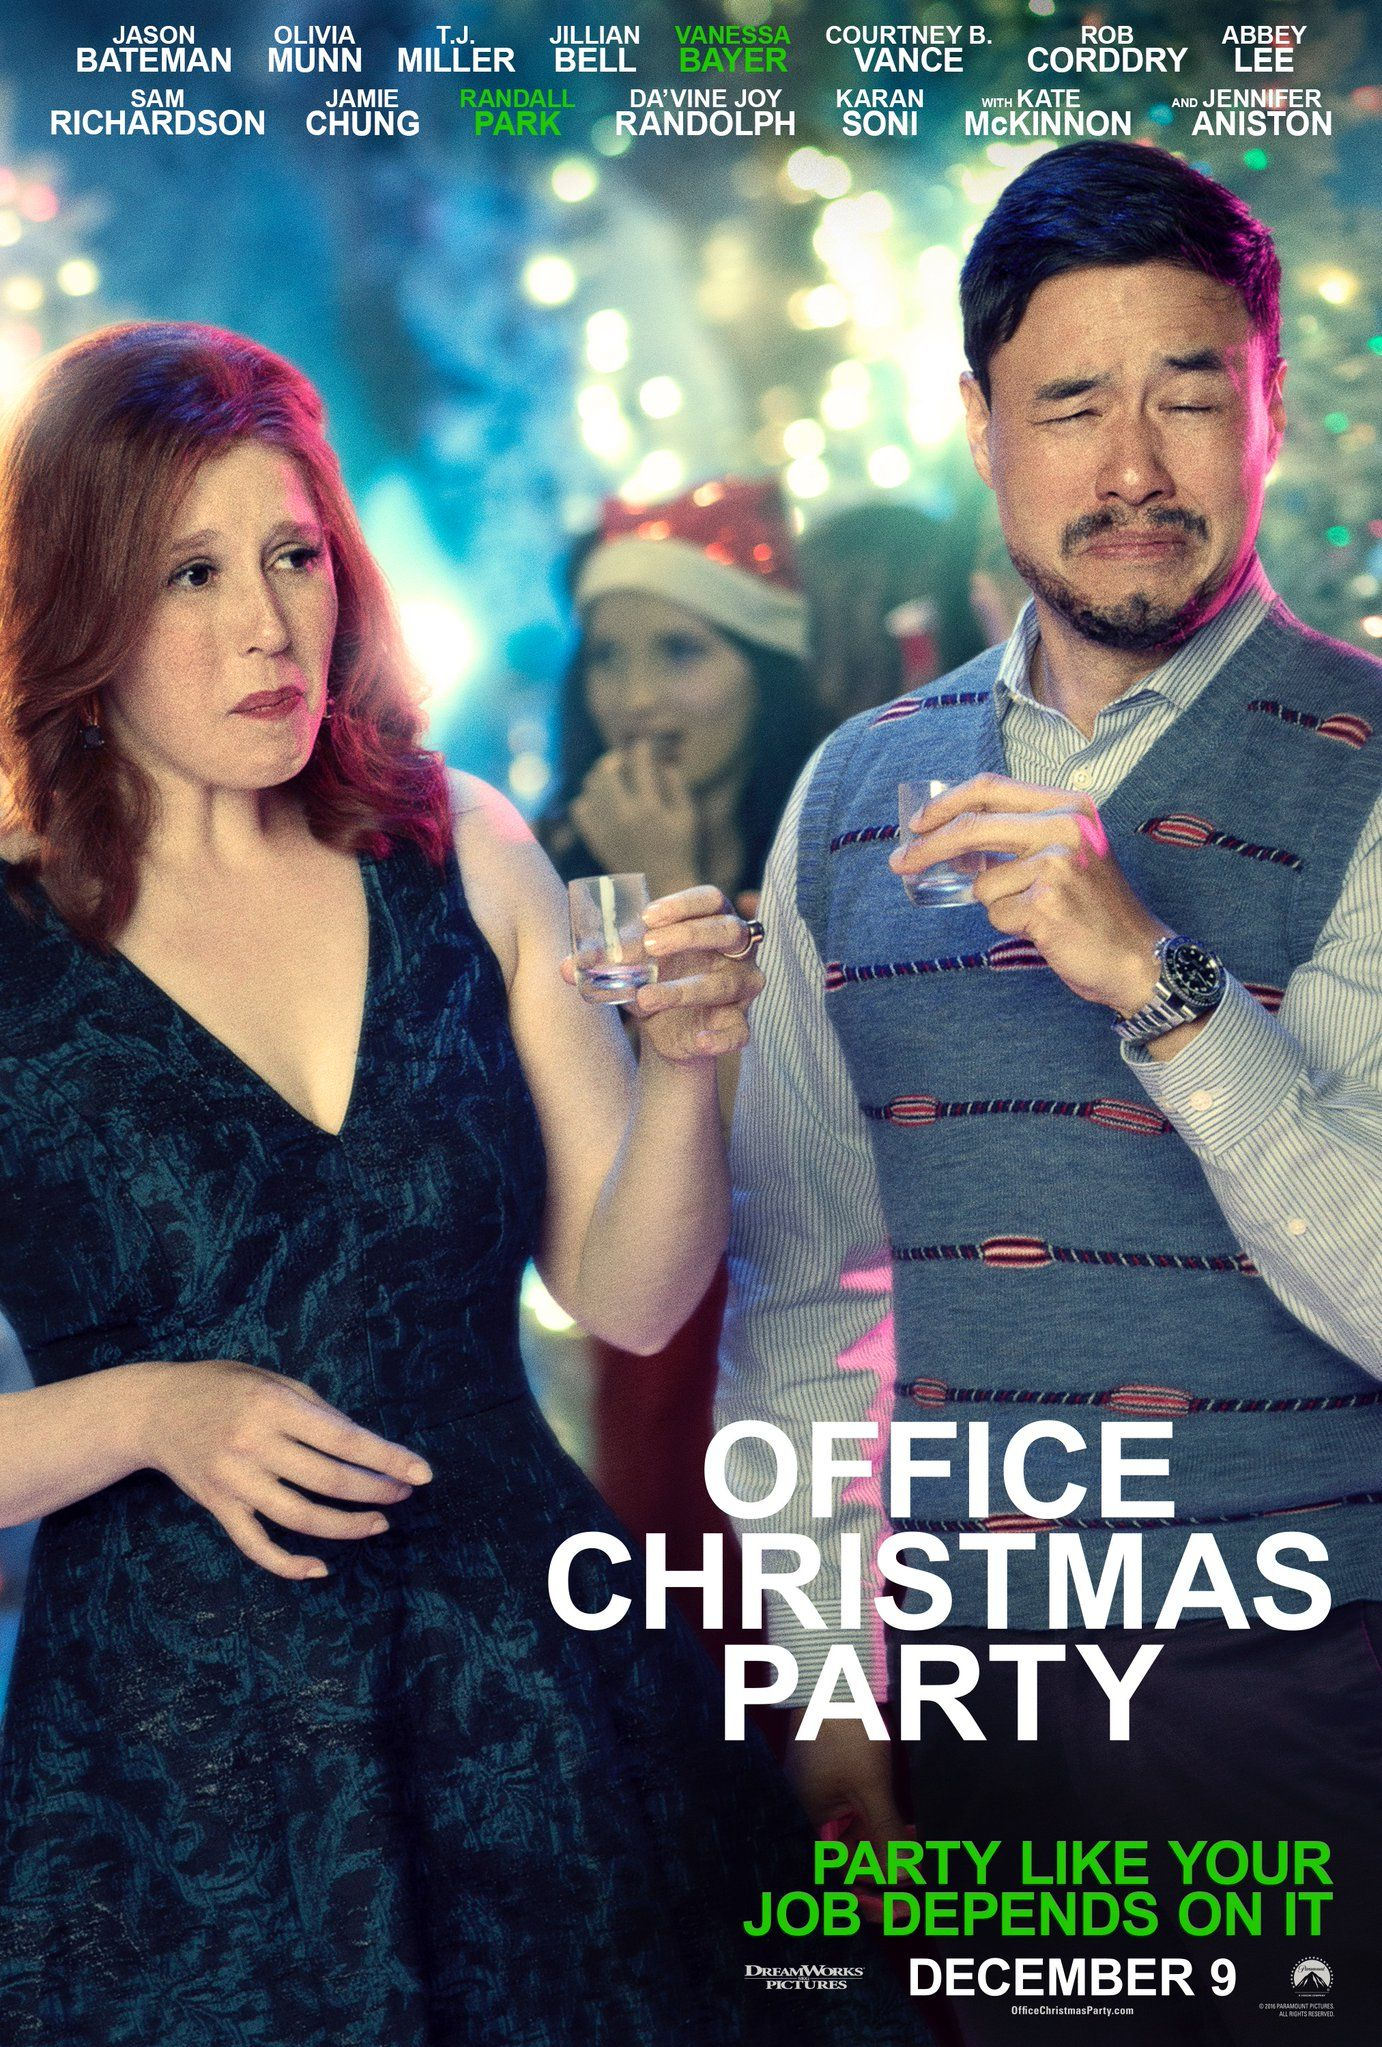 New Office Christmas Party Poster | Latest-movies | Pinterest ...